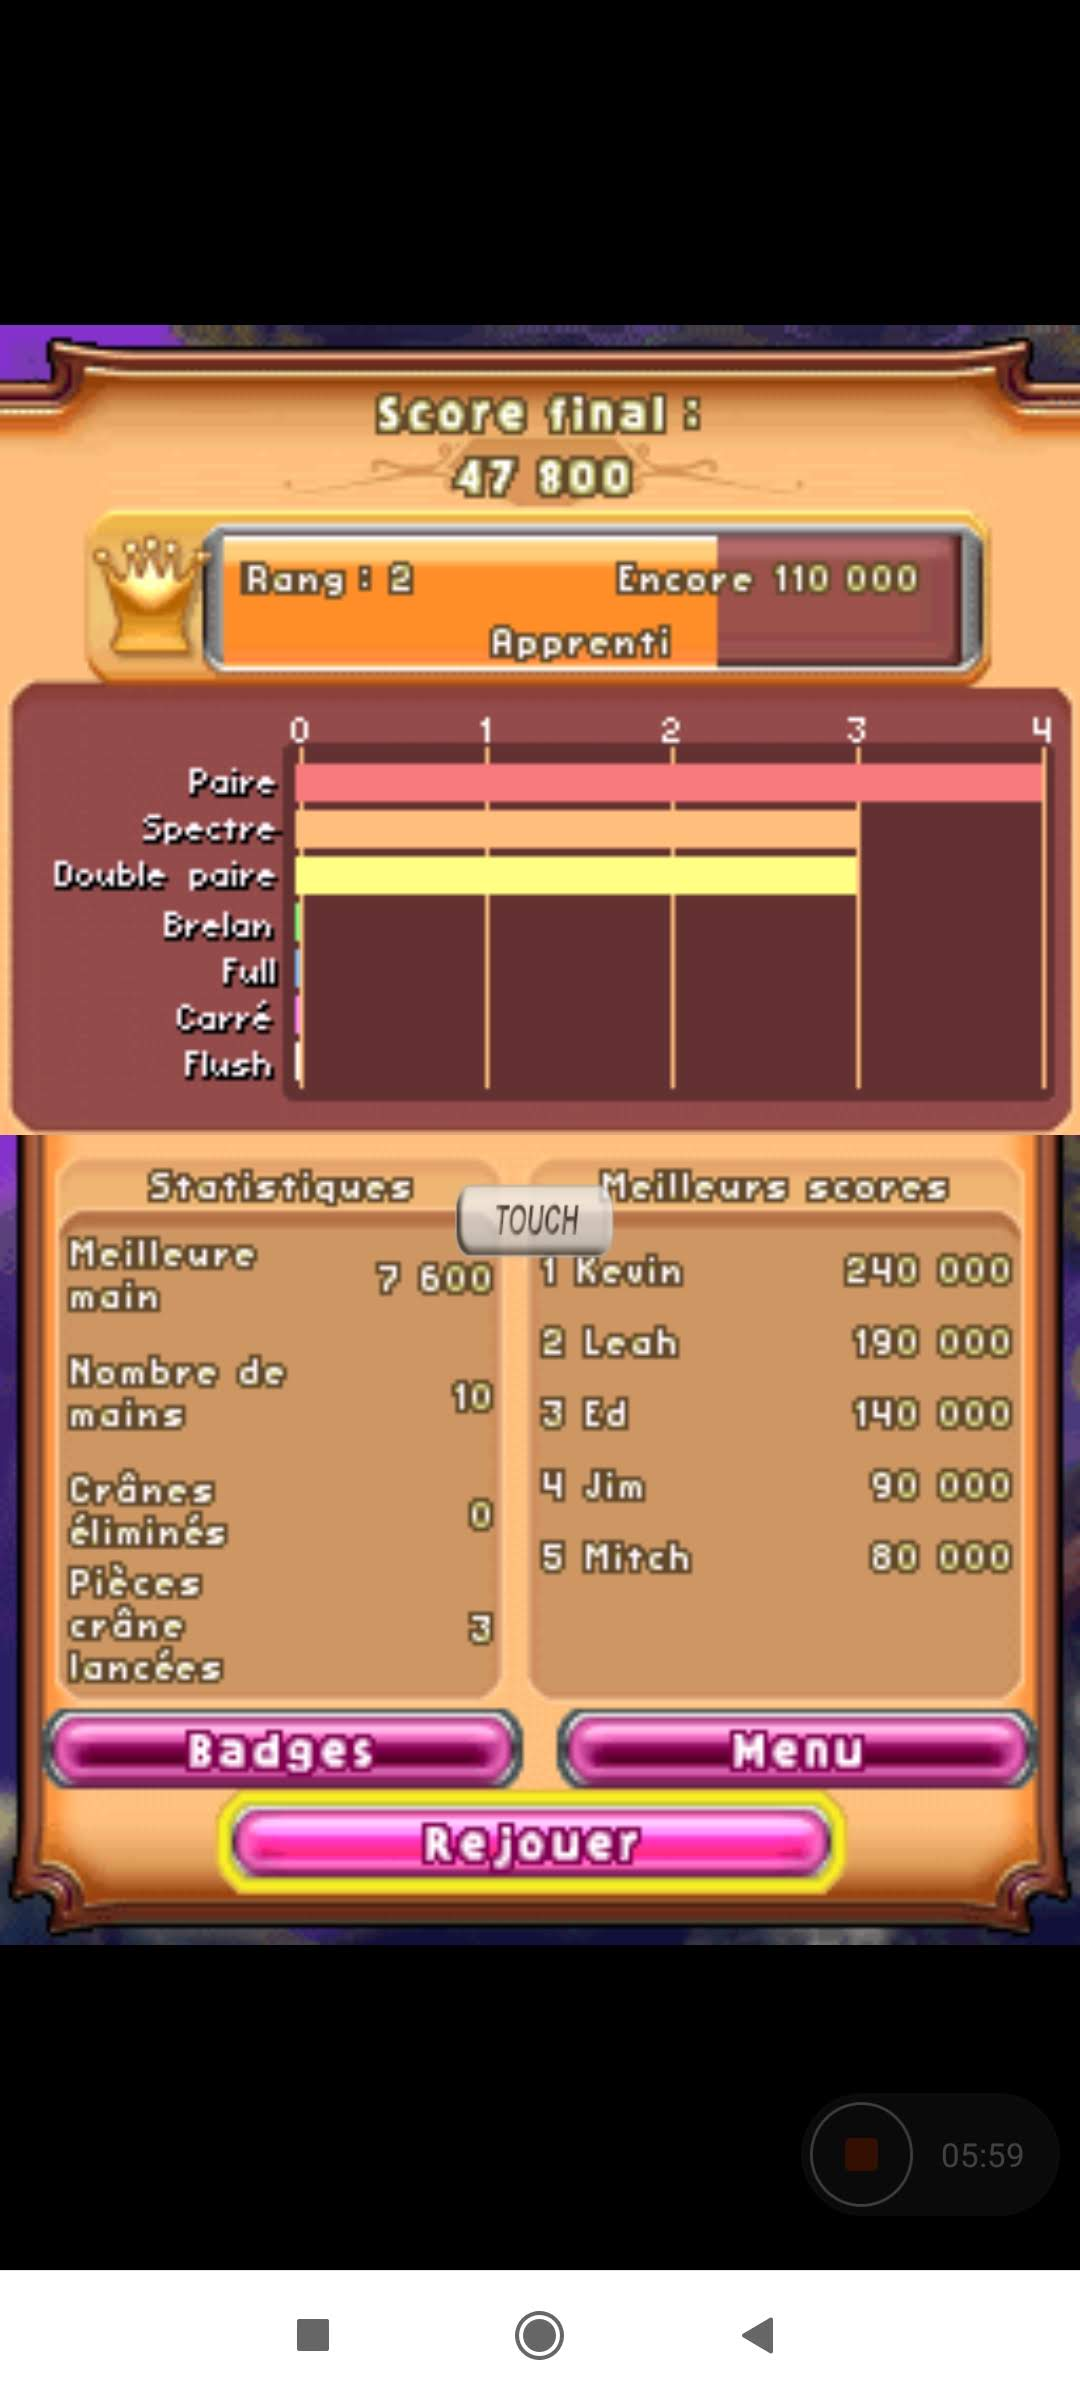 Larquey: Bejeweled 3: Poker [Number of Two Pair] (Nintendo DS Emulated) 3 points on 2020-09-26 03:29:19